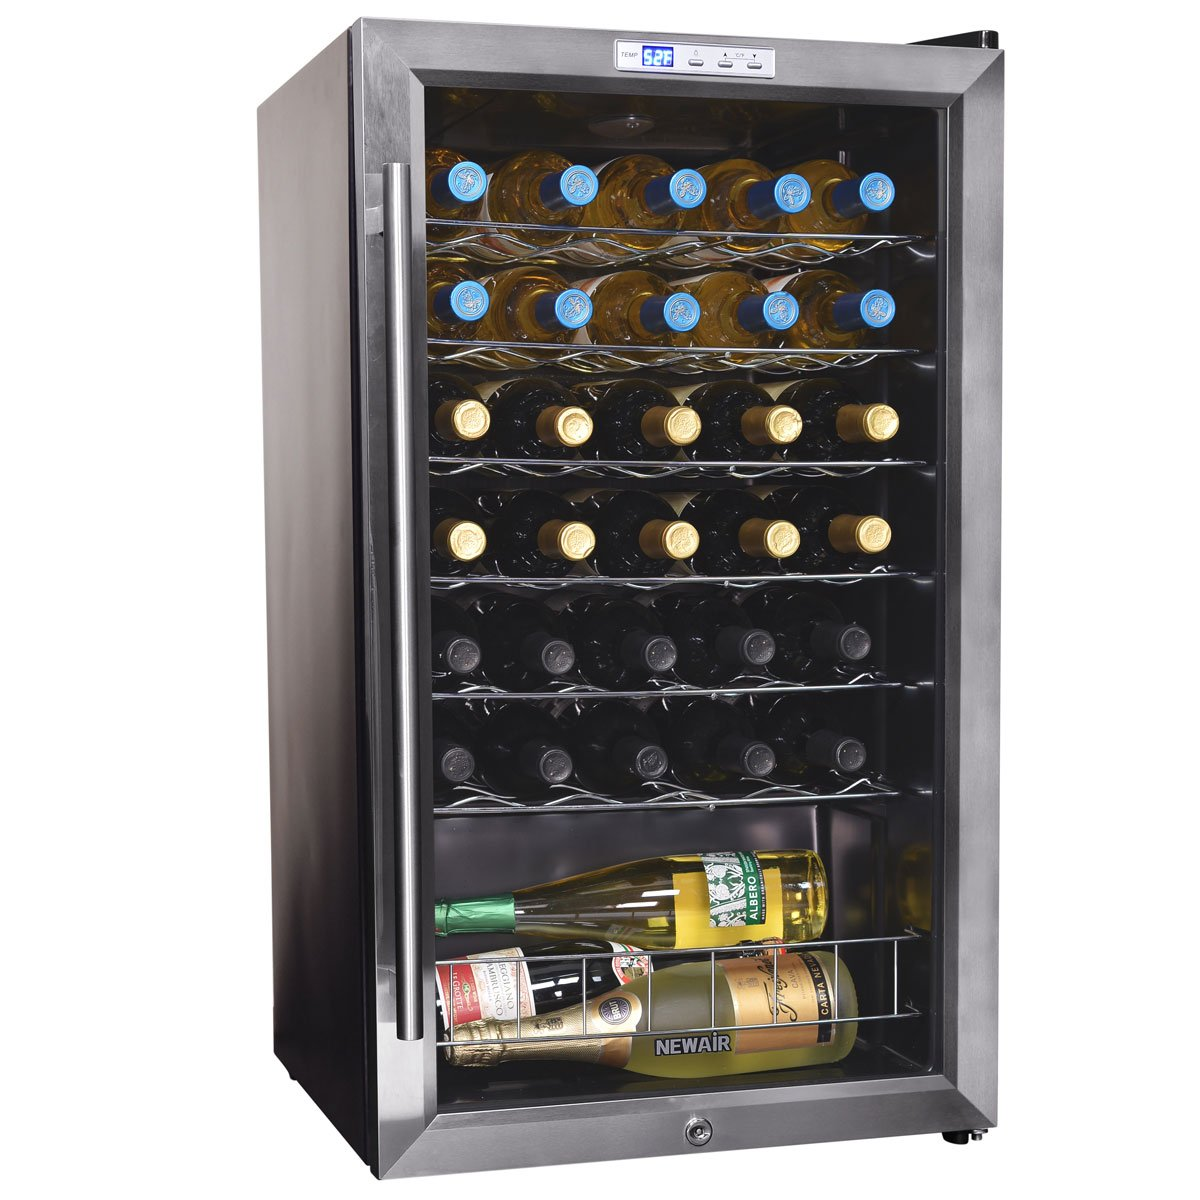 NewAir Wine Cooler and Refrigerator, 27 Bottle Freestanding Wine Chiller Fridge, Stainless steel with Glass Door, AWC-270E